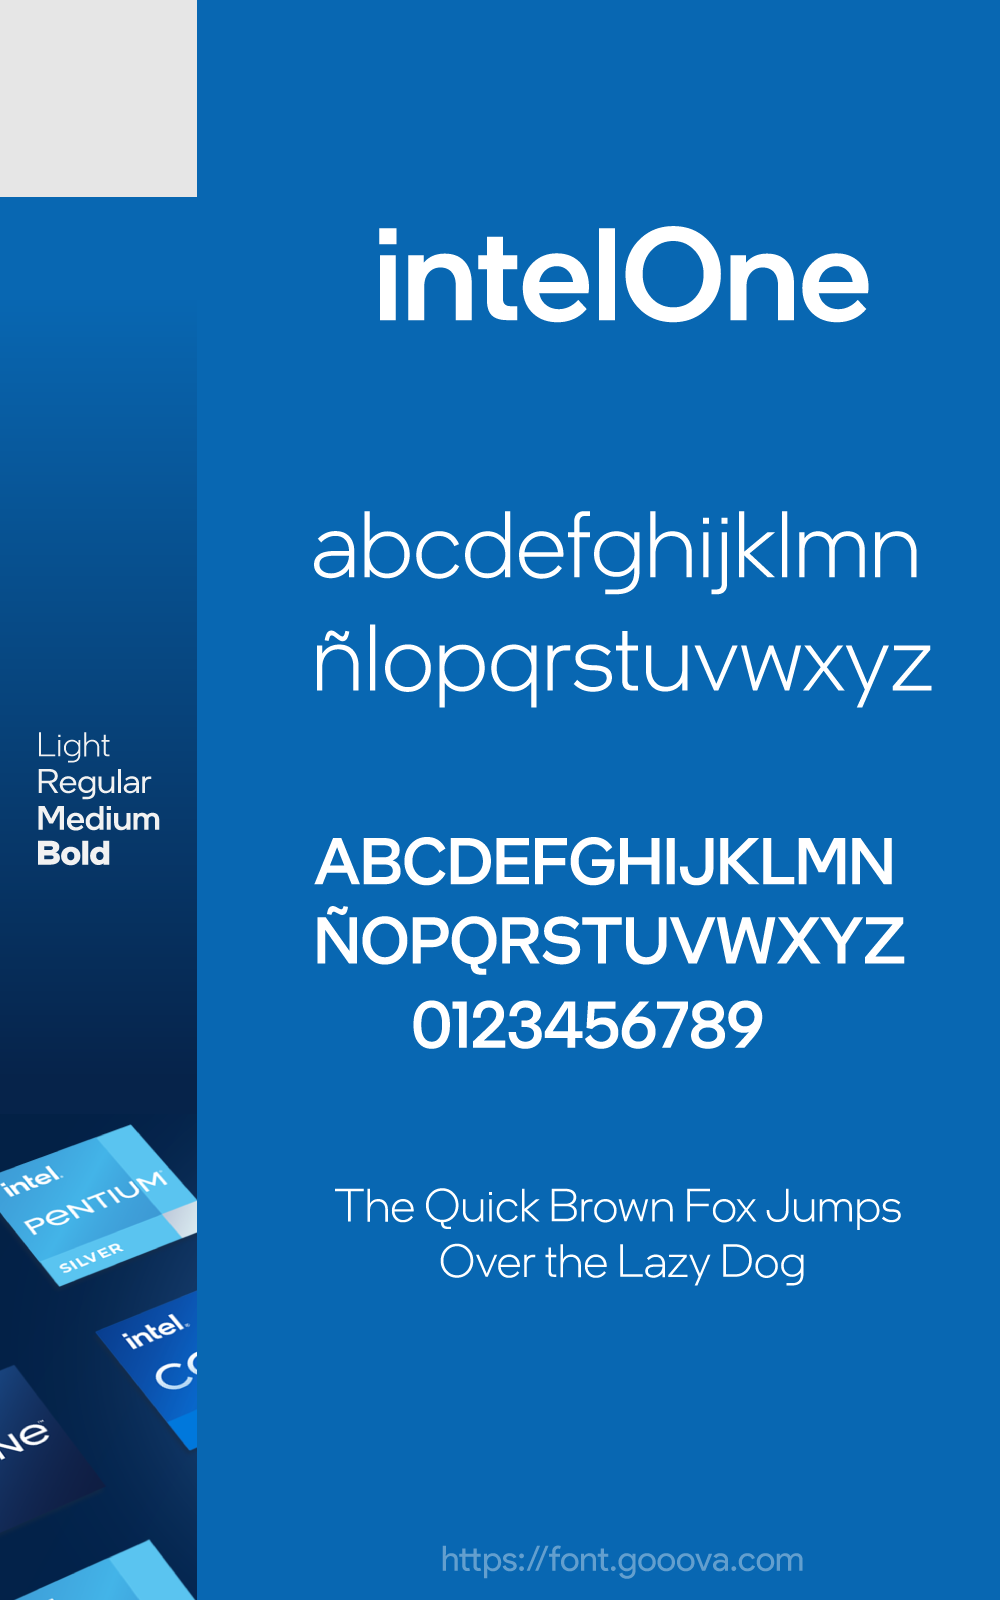 Intel One Official Font